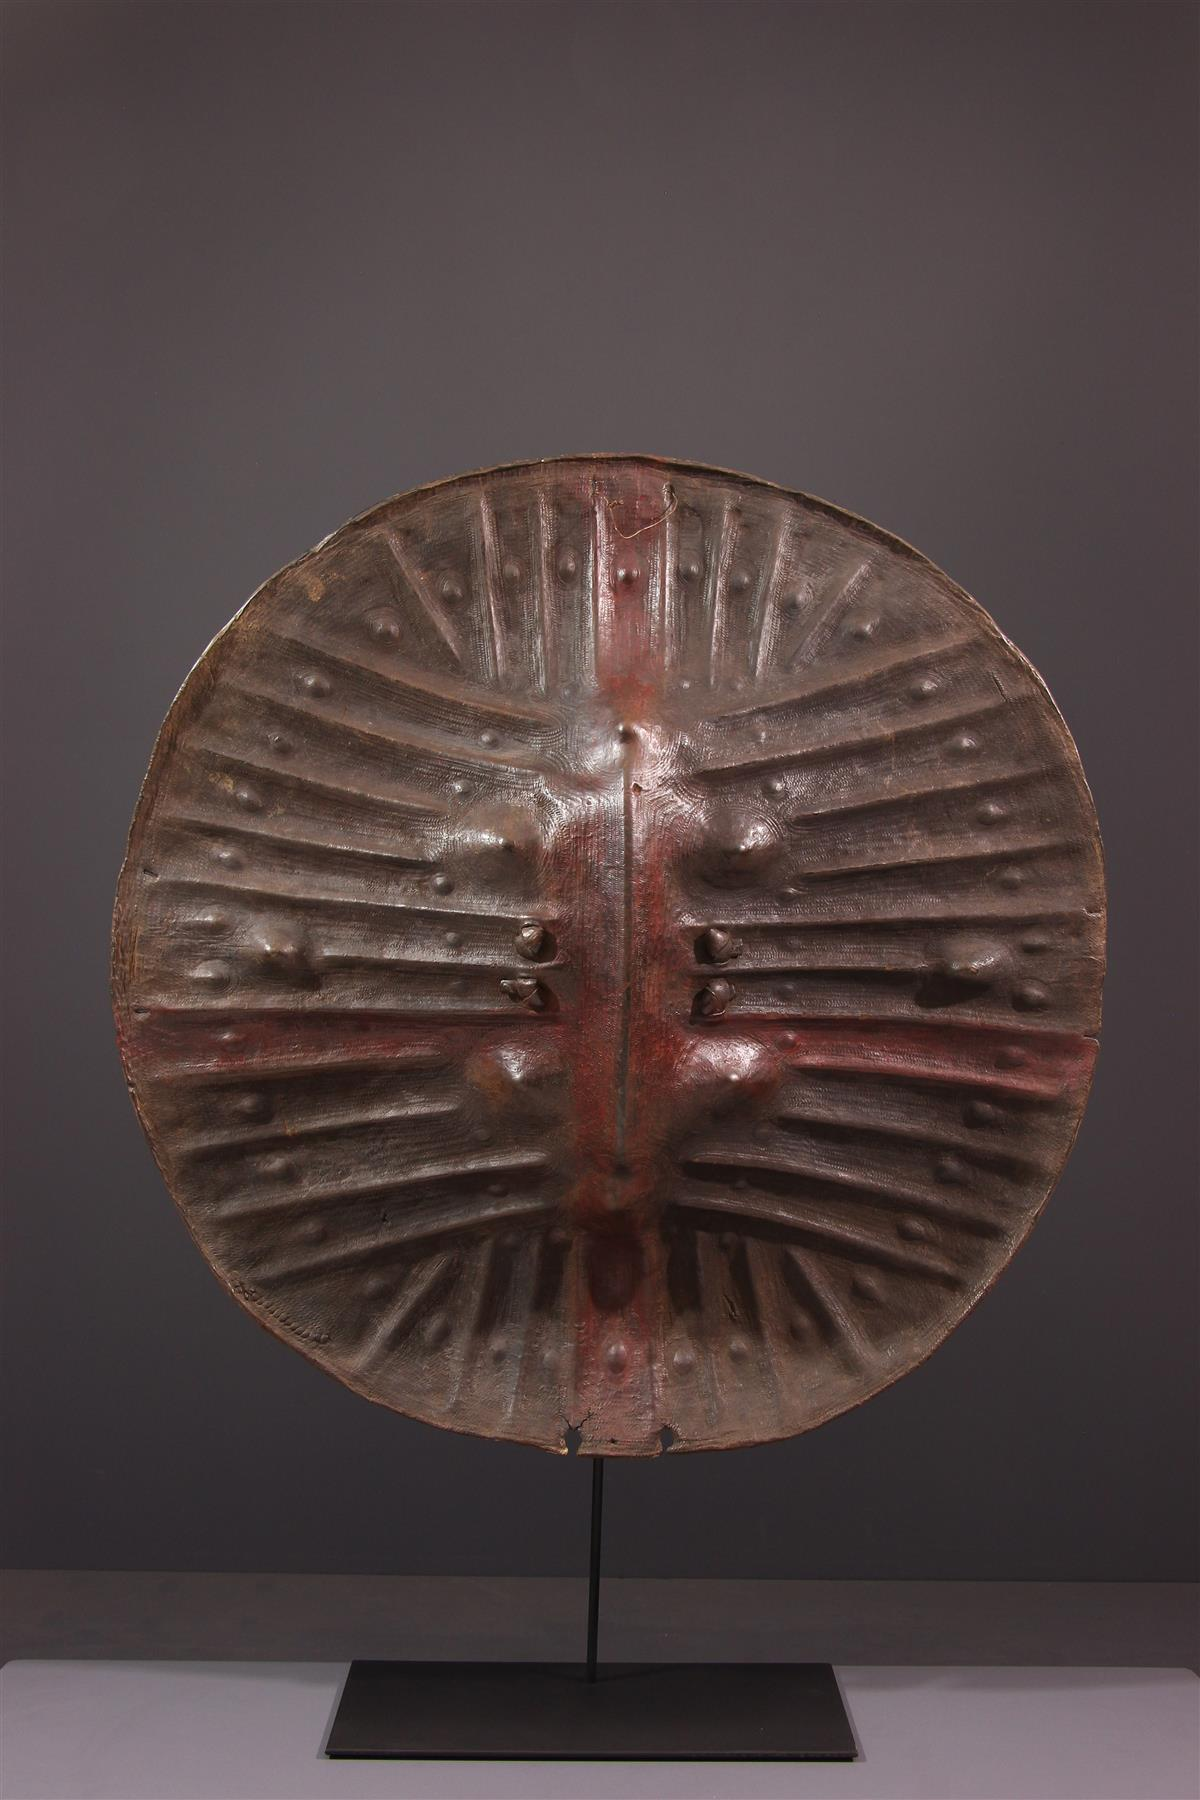 African Shield - African art